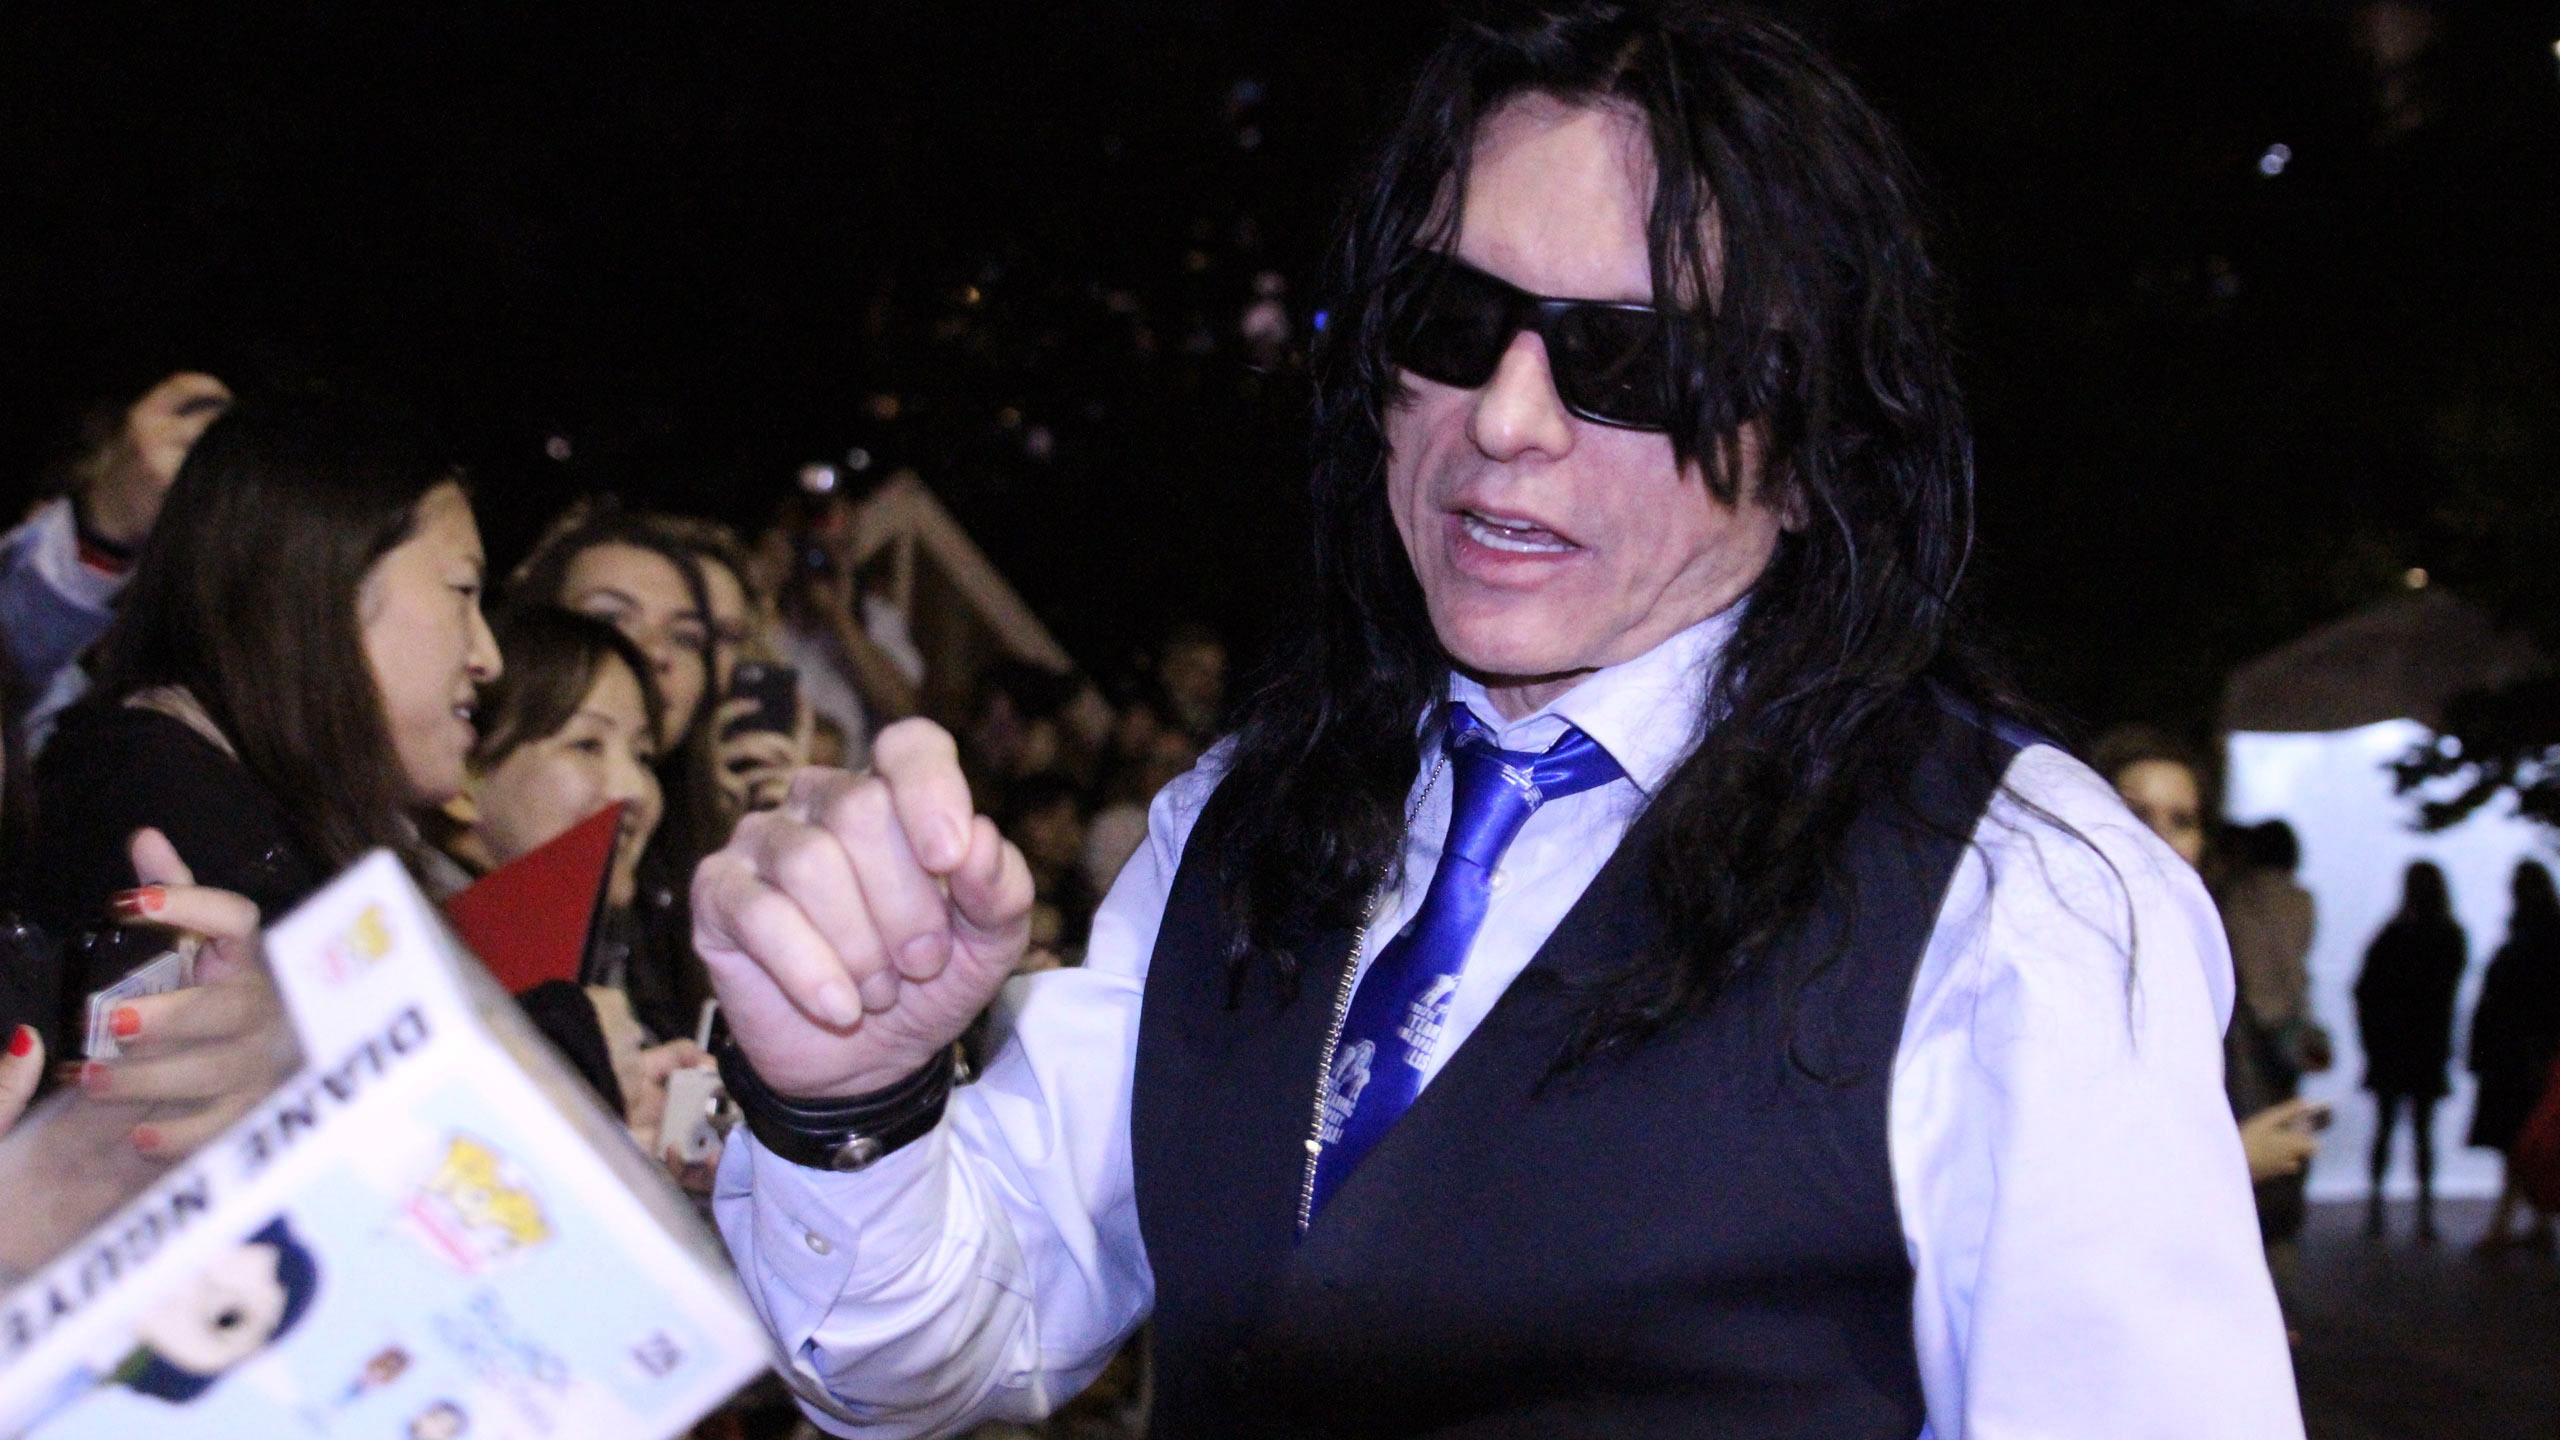 TommyWiseau_LaurenFong-1